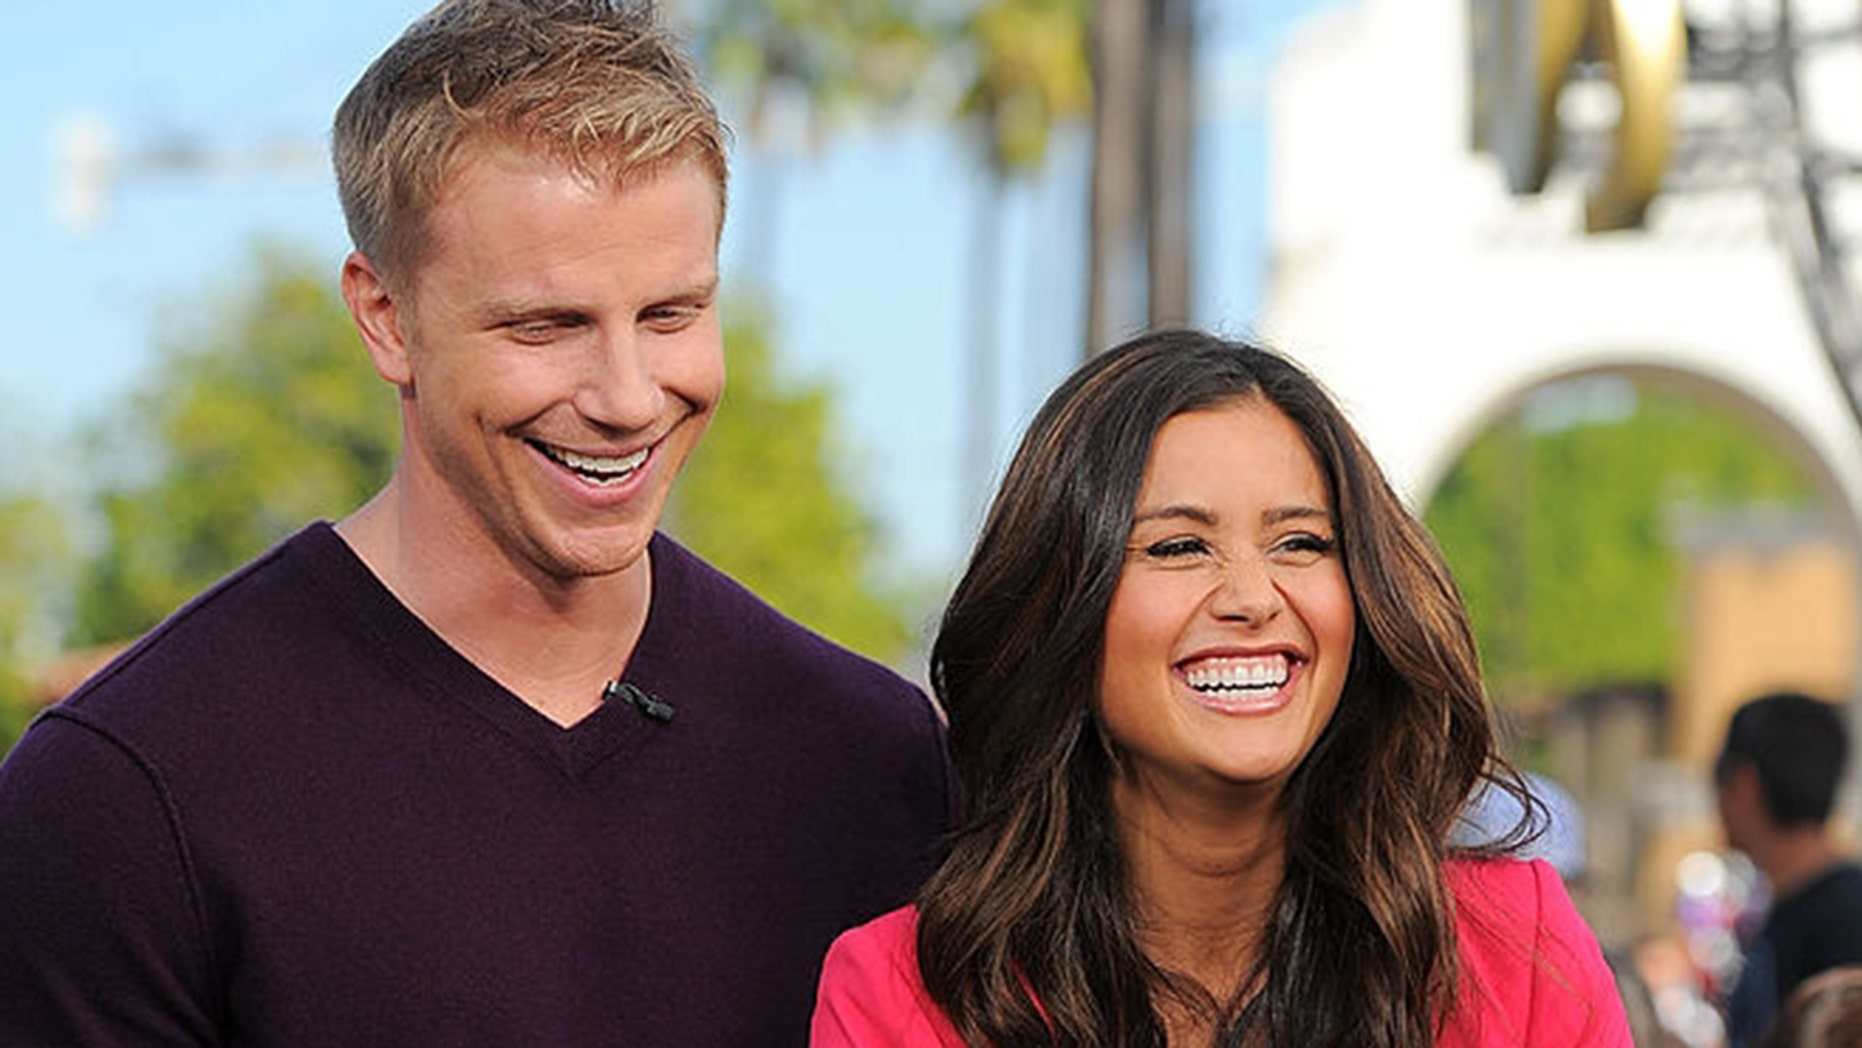 Sean and Catherine Lowe are inviting people to join them at Subway in Dallas for Valentine's Day.